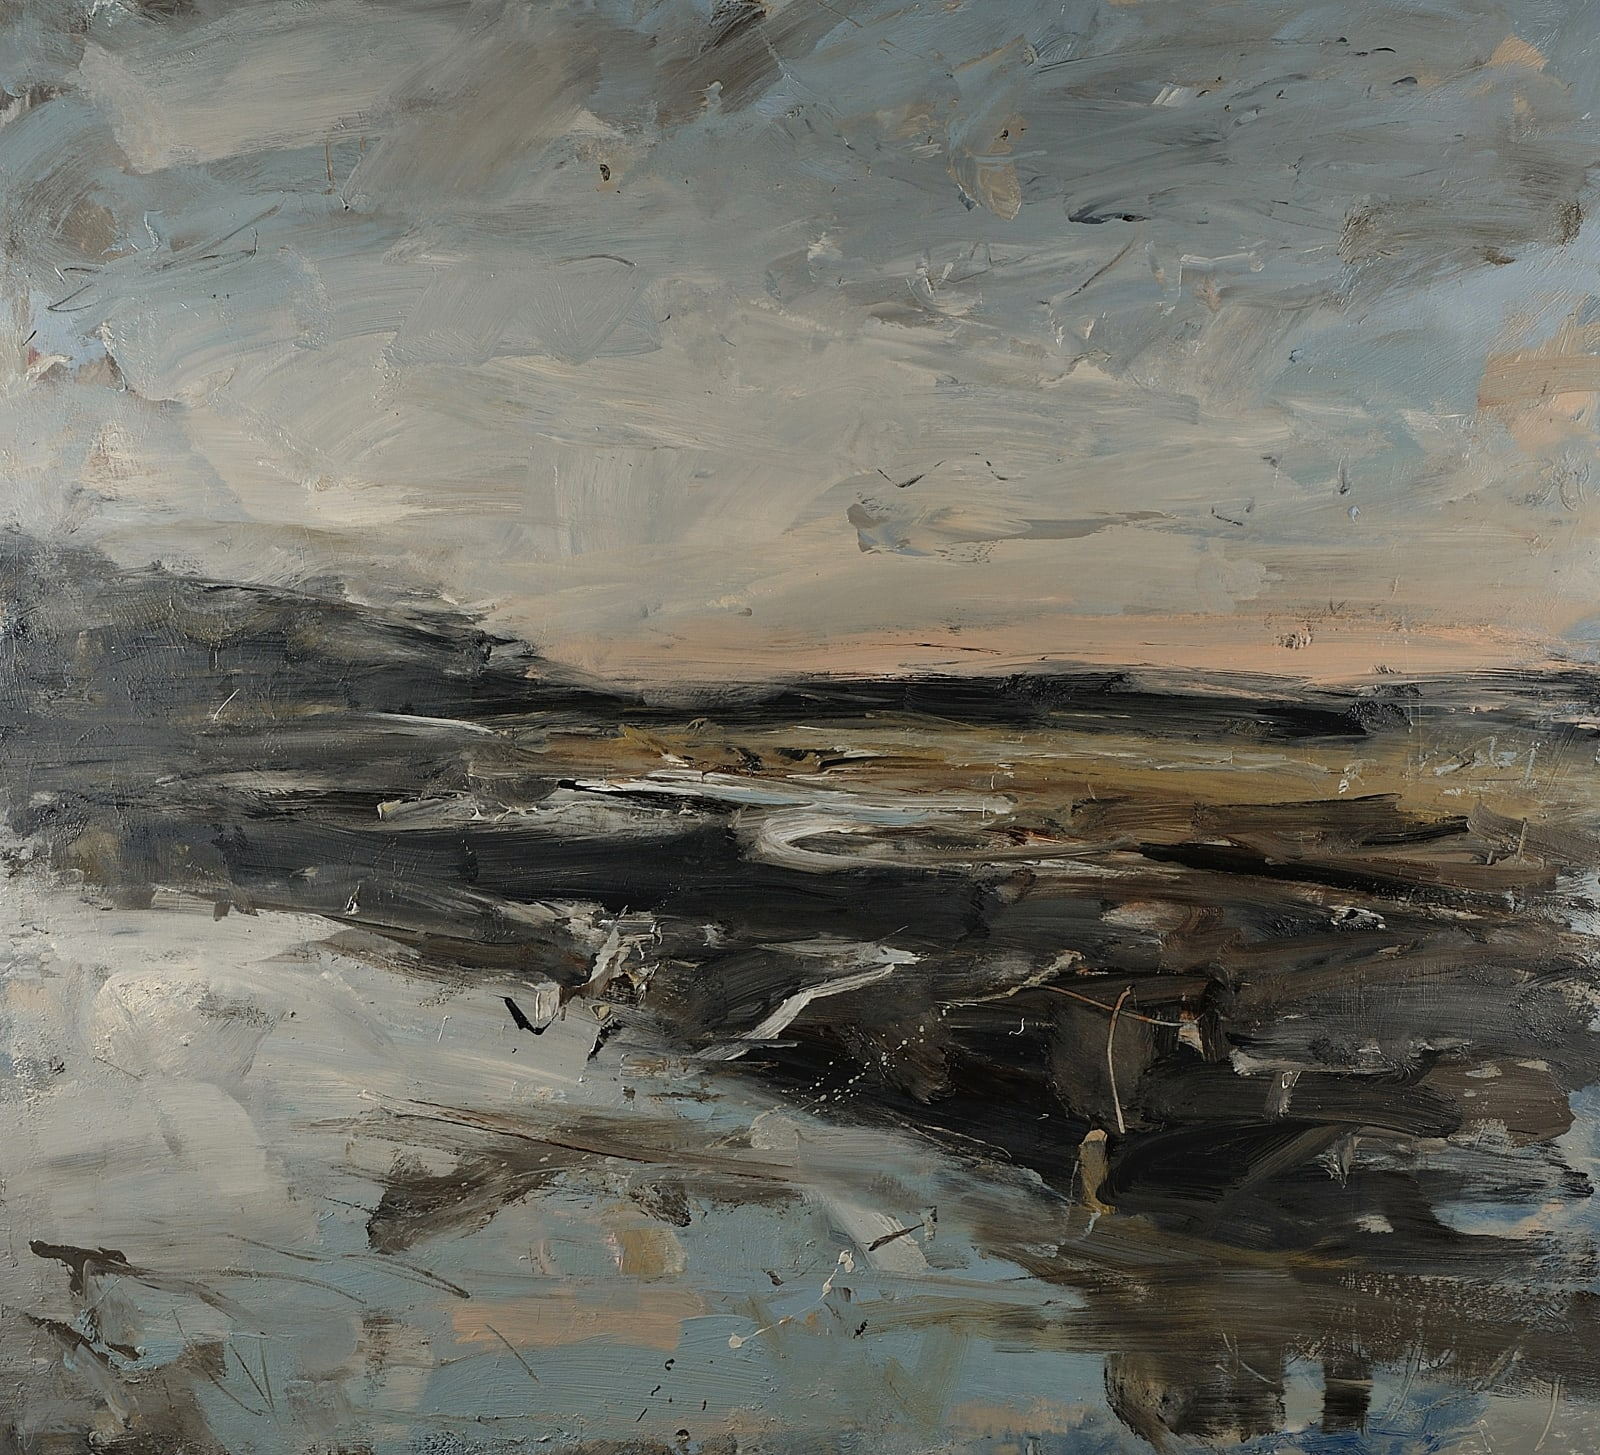 Sky Clearing Over the Estuary, Herons (Pembrokeshire) oil on canvas 100cm x 110cm